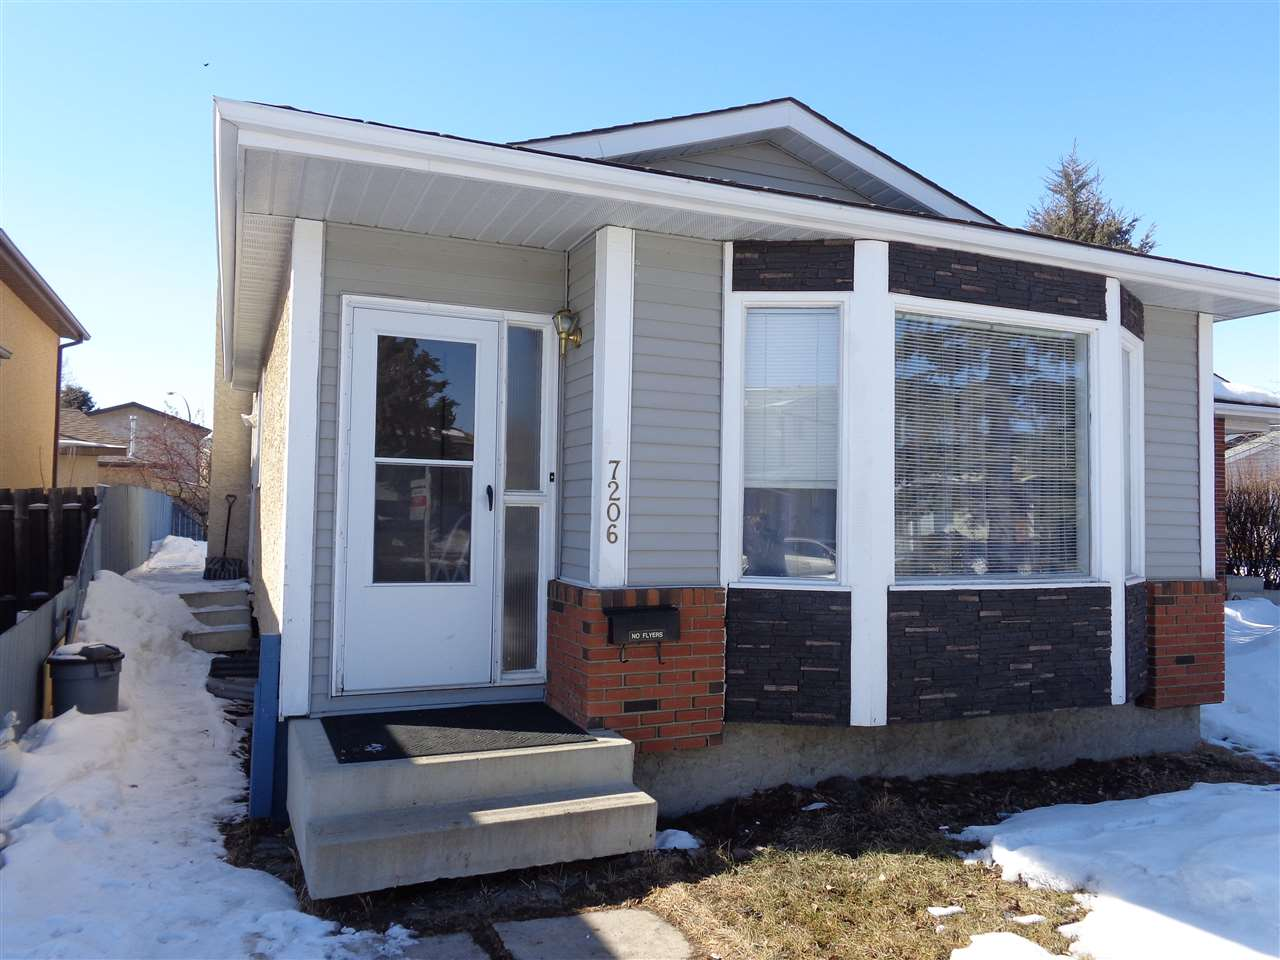 7206 183A Street NW, 4 bed, 2 bath, at $322,000